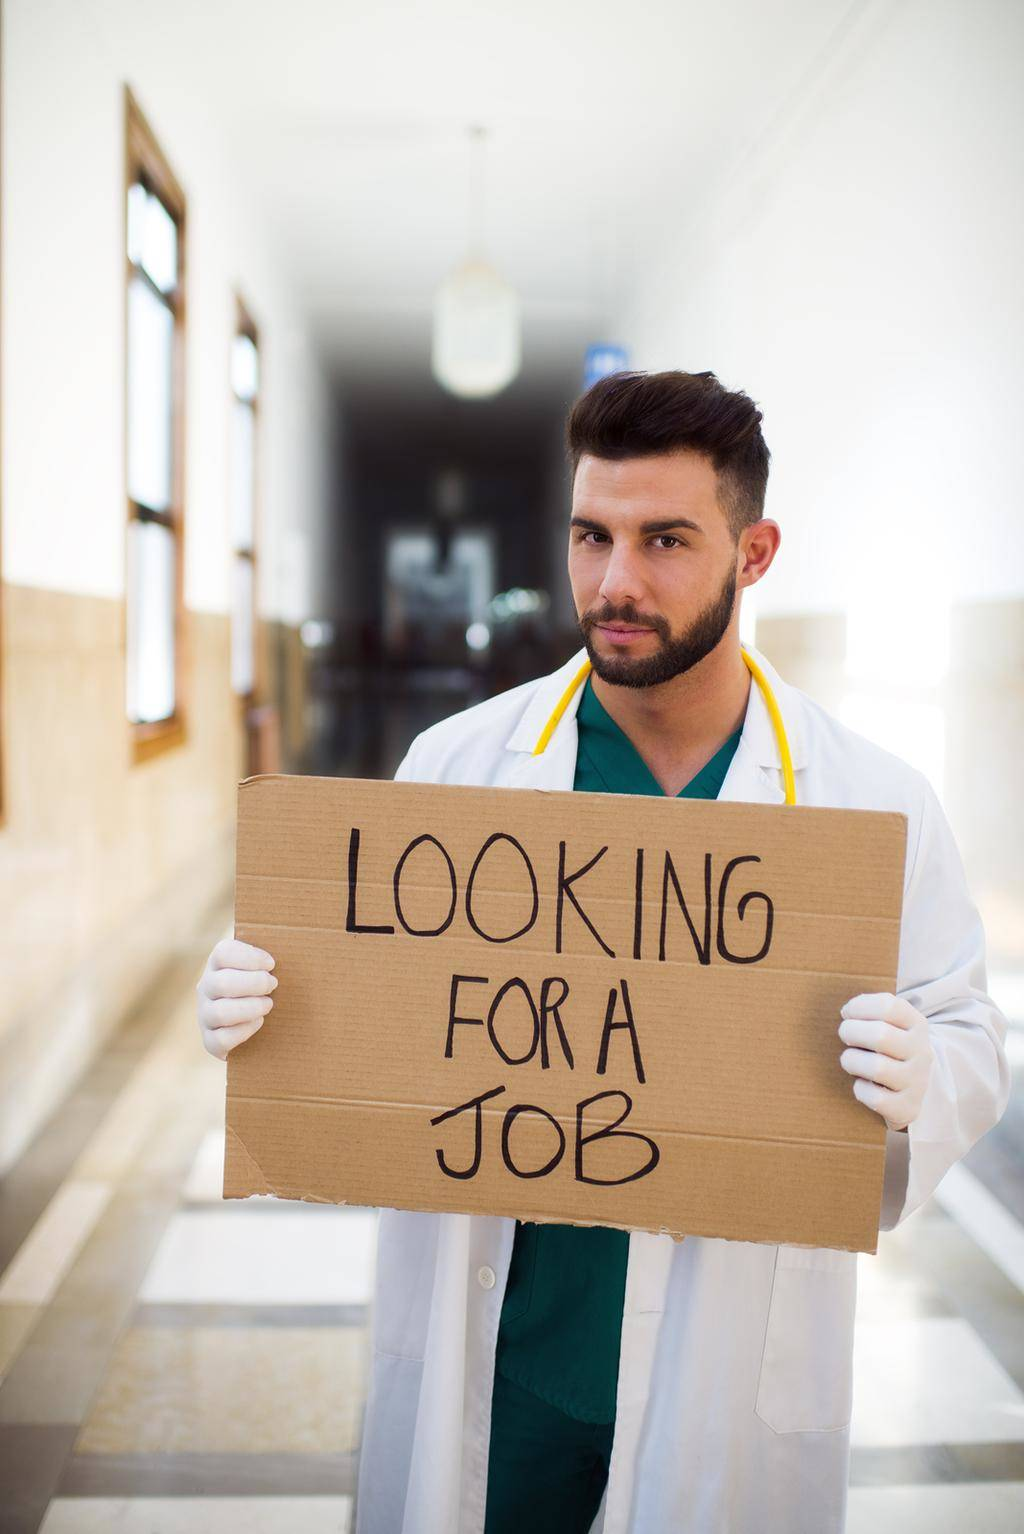 doctor job jobs cna unemployed physician sign holding young cnaclassesnearyou need certification visit near doctors general workers medical labor healthcare